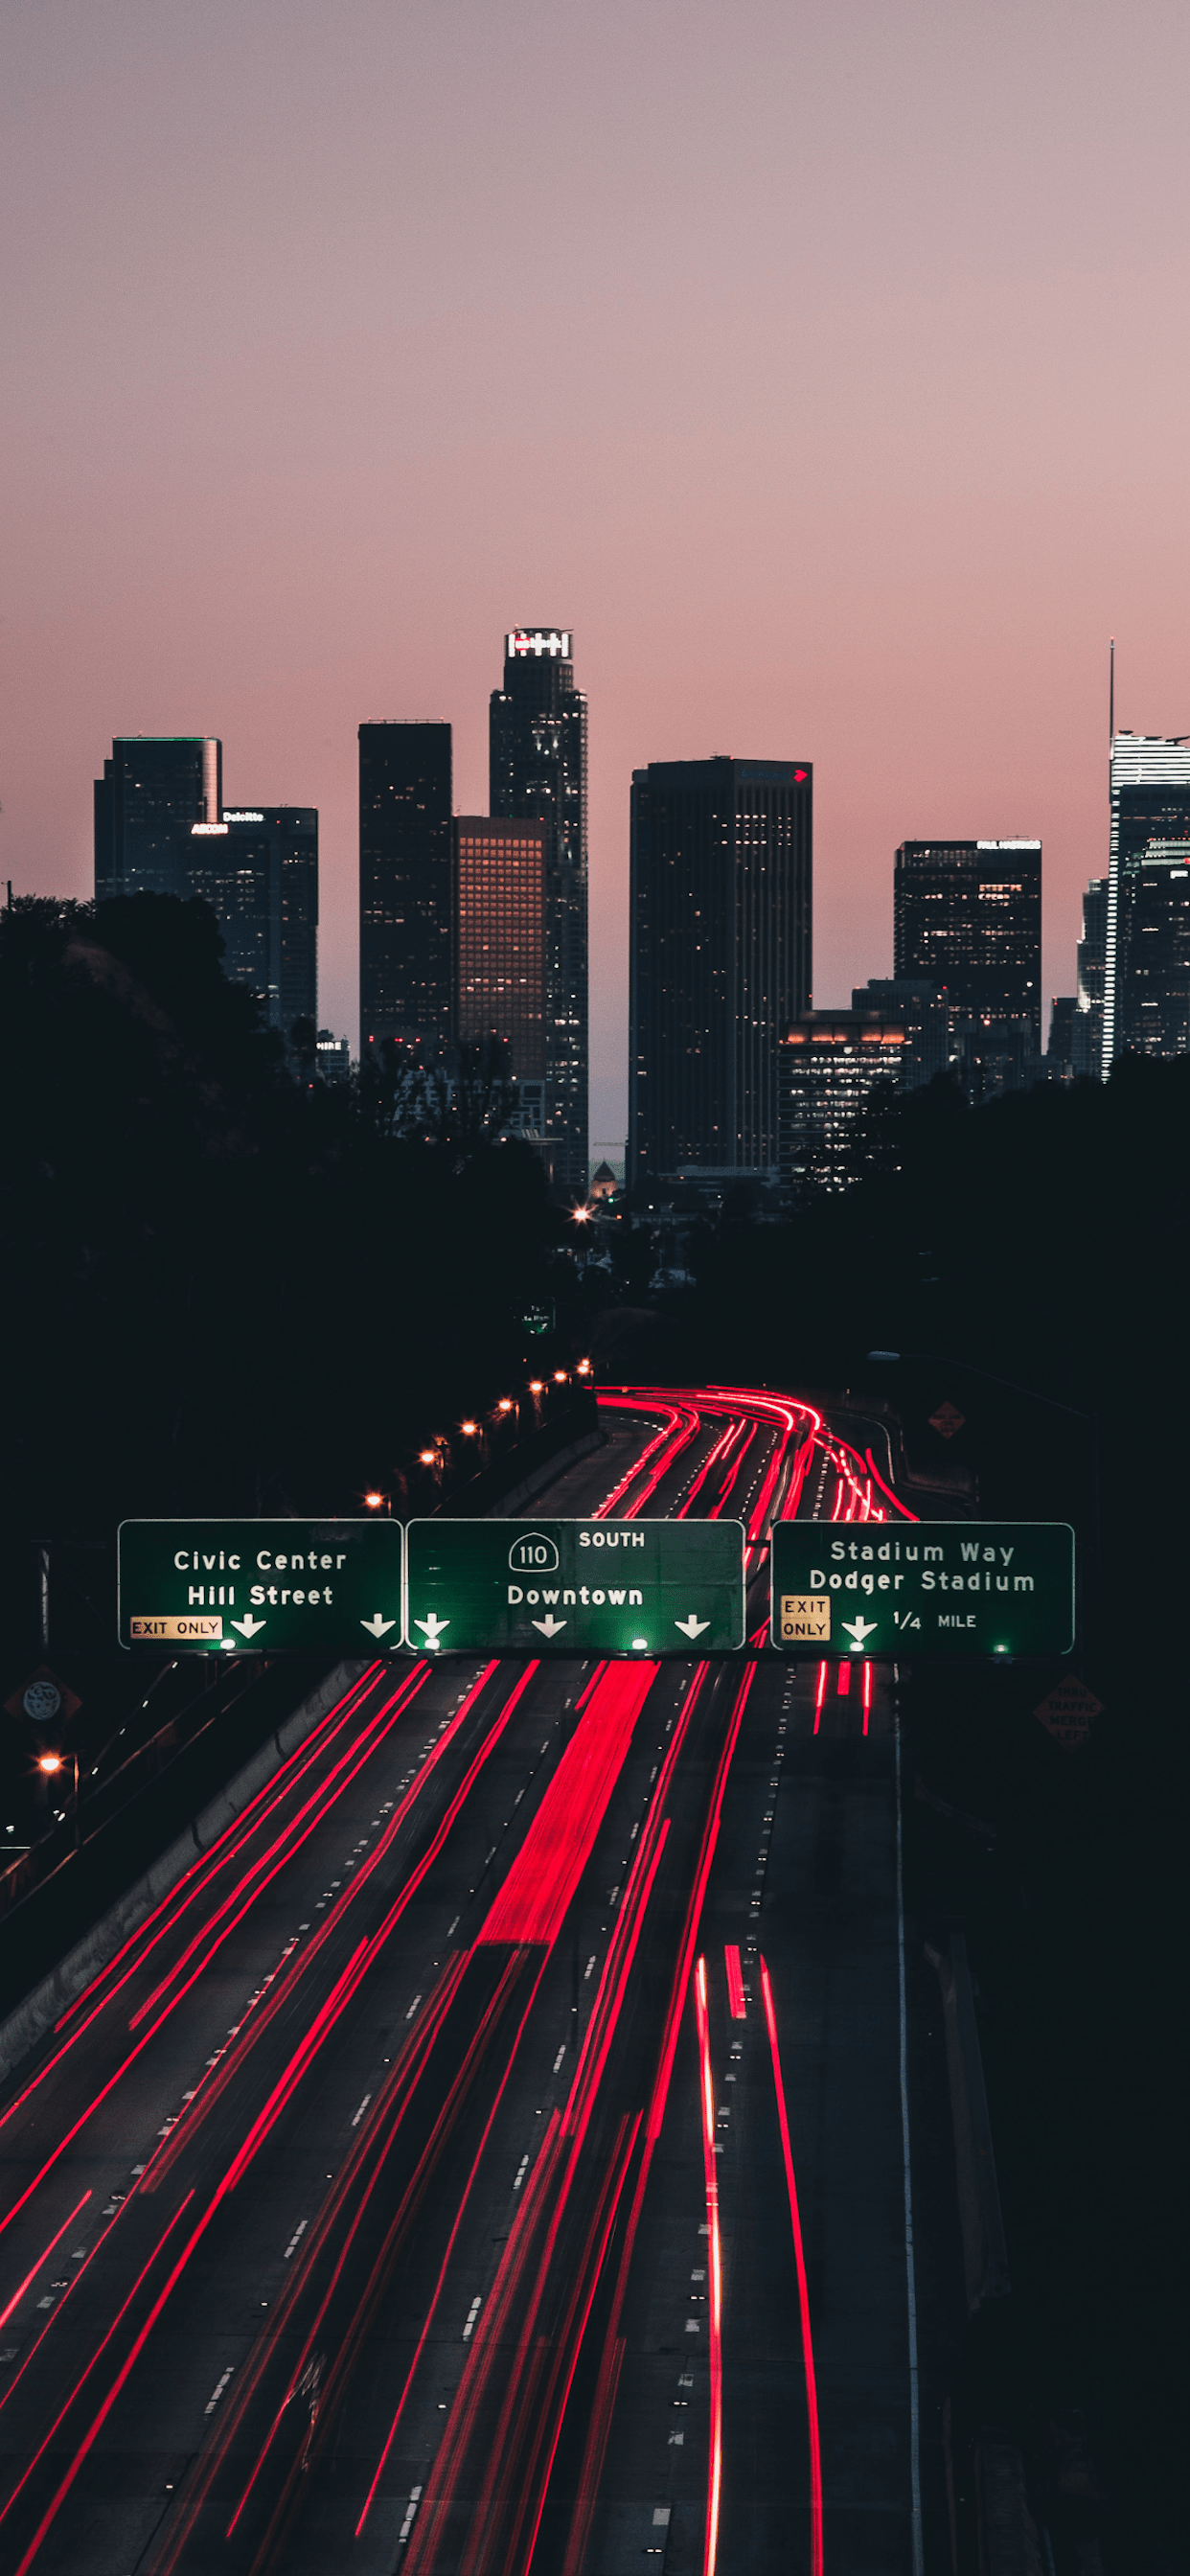 iPhone wallpaper road los angeles Road